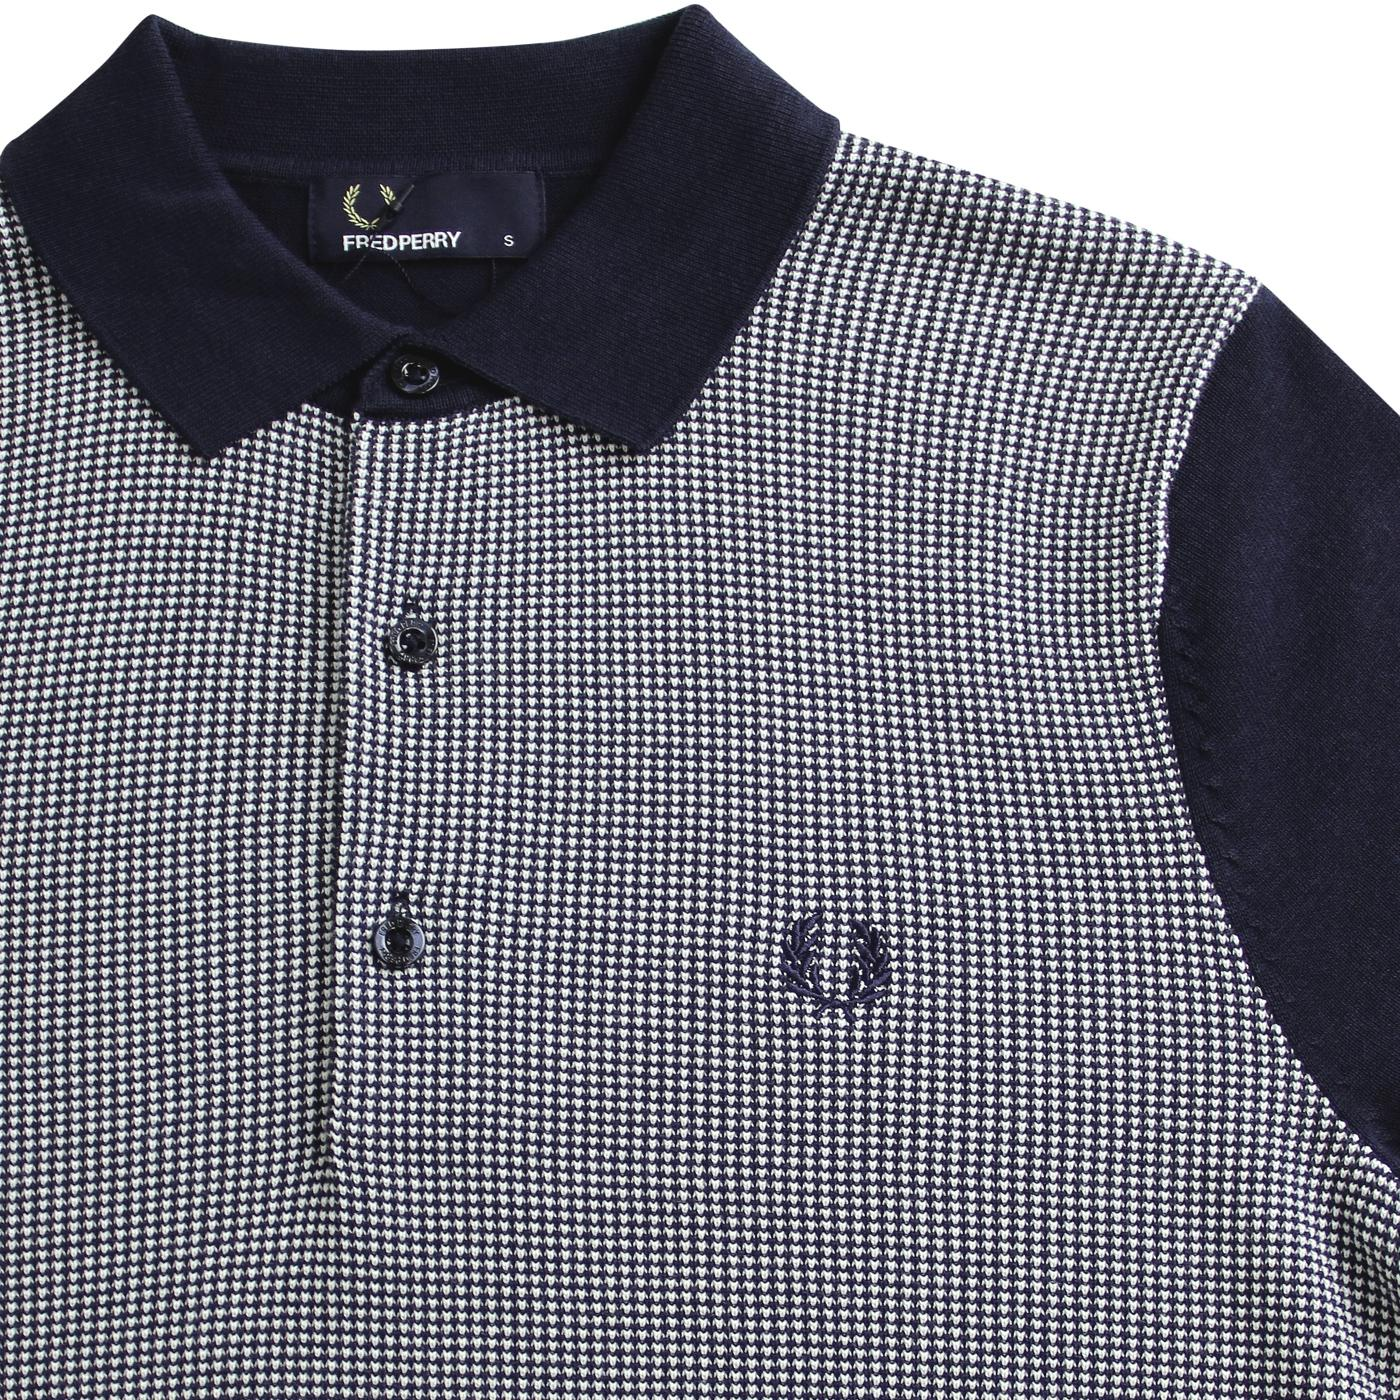 5f75c1052 FRED PERRY Mod Birdseye Knitted Polo Top in Deep Carbon